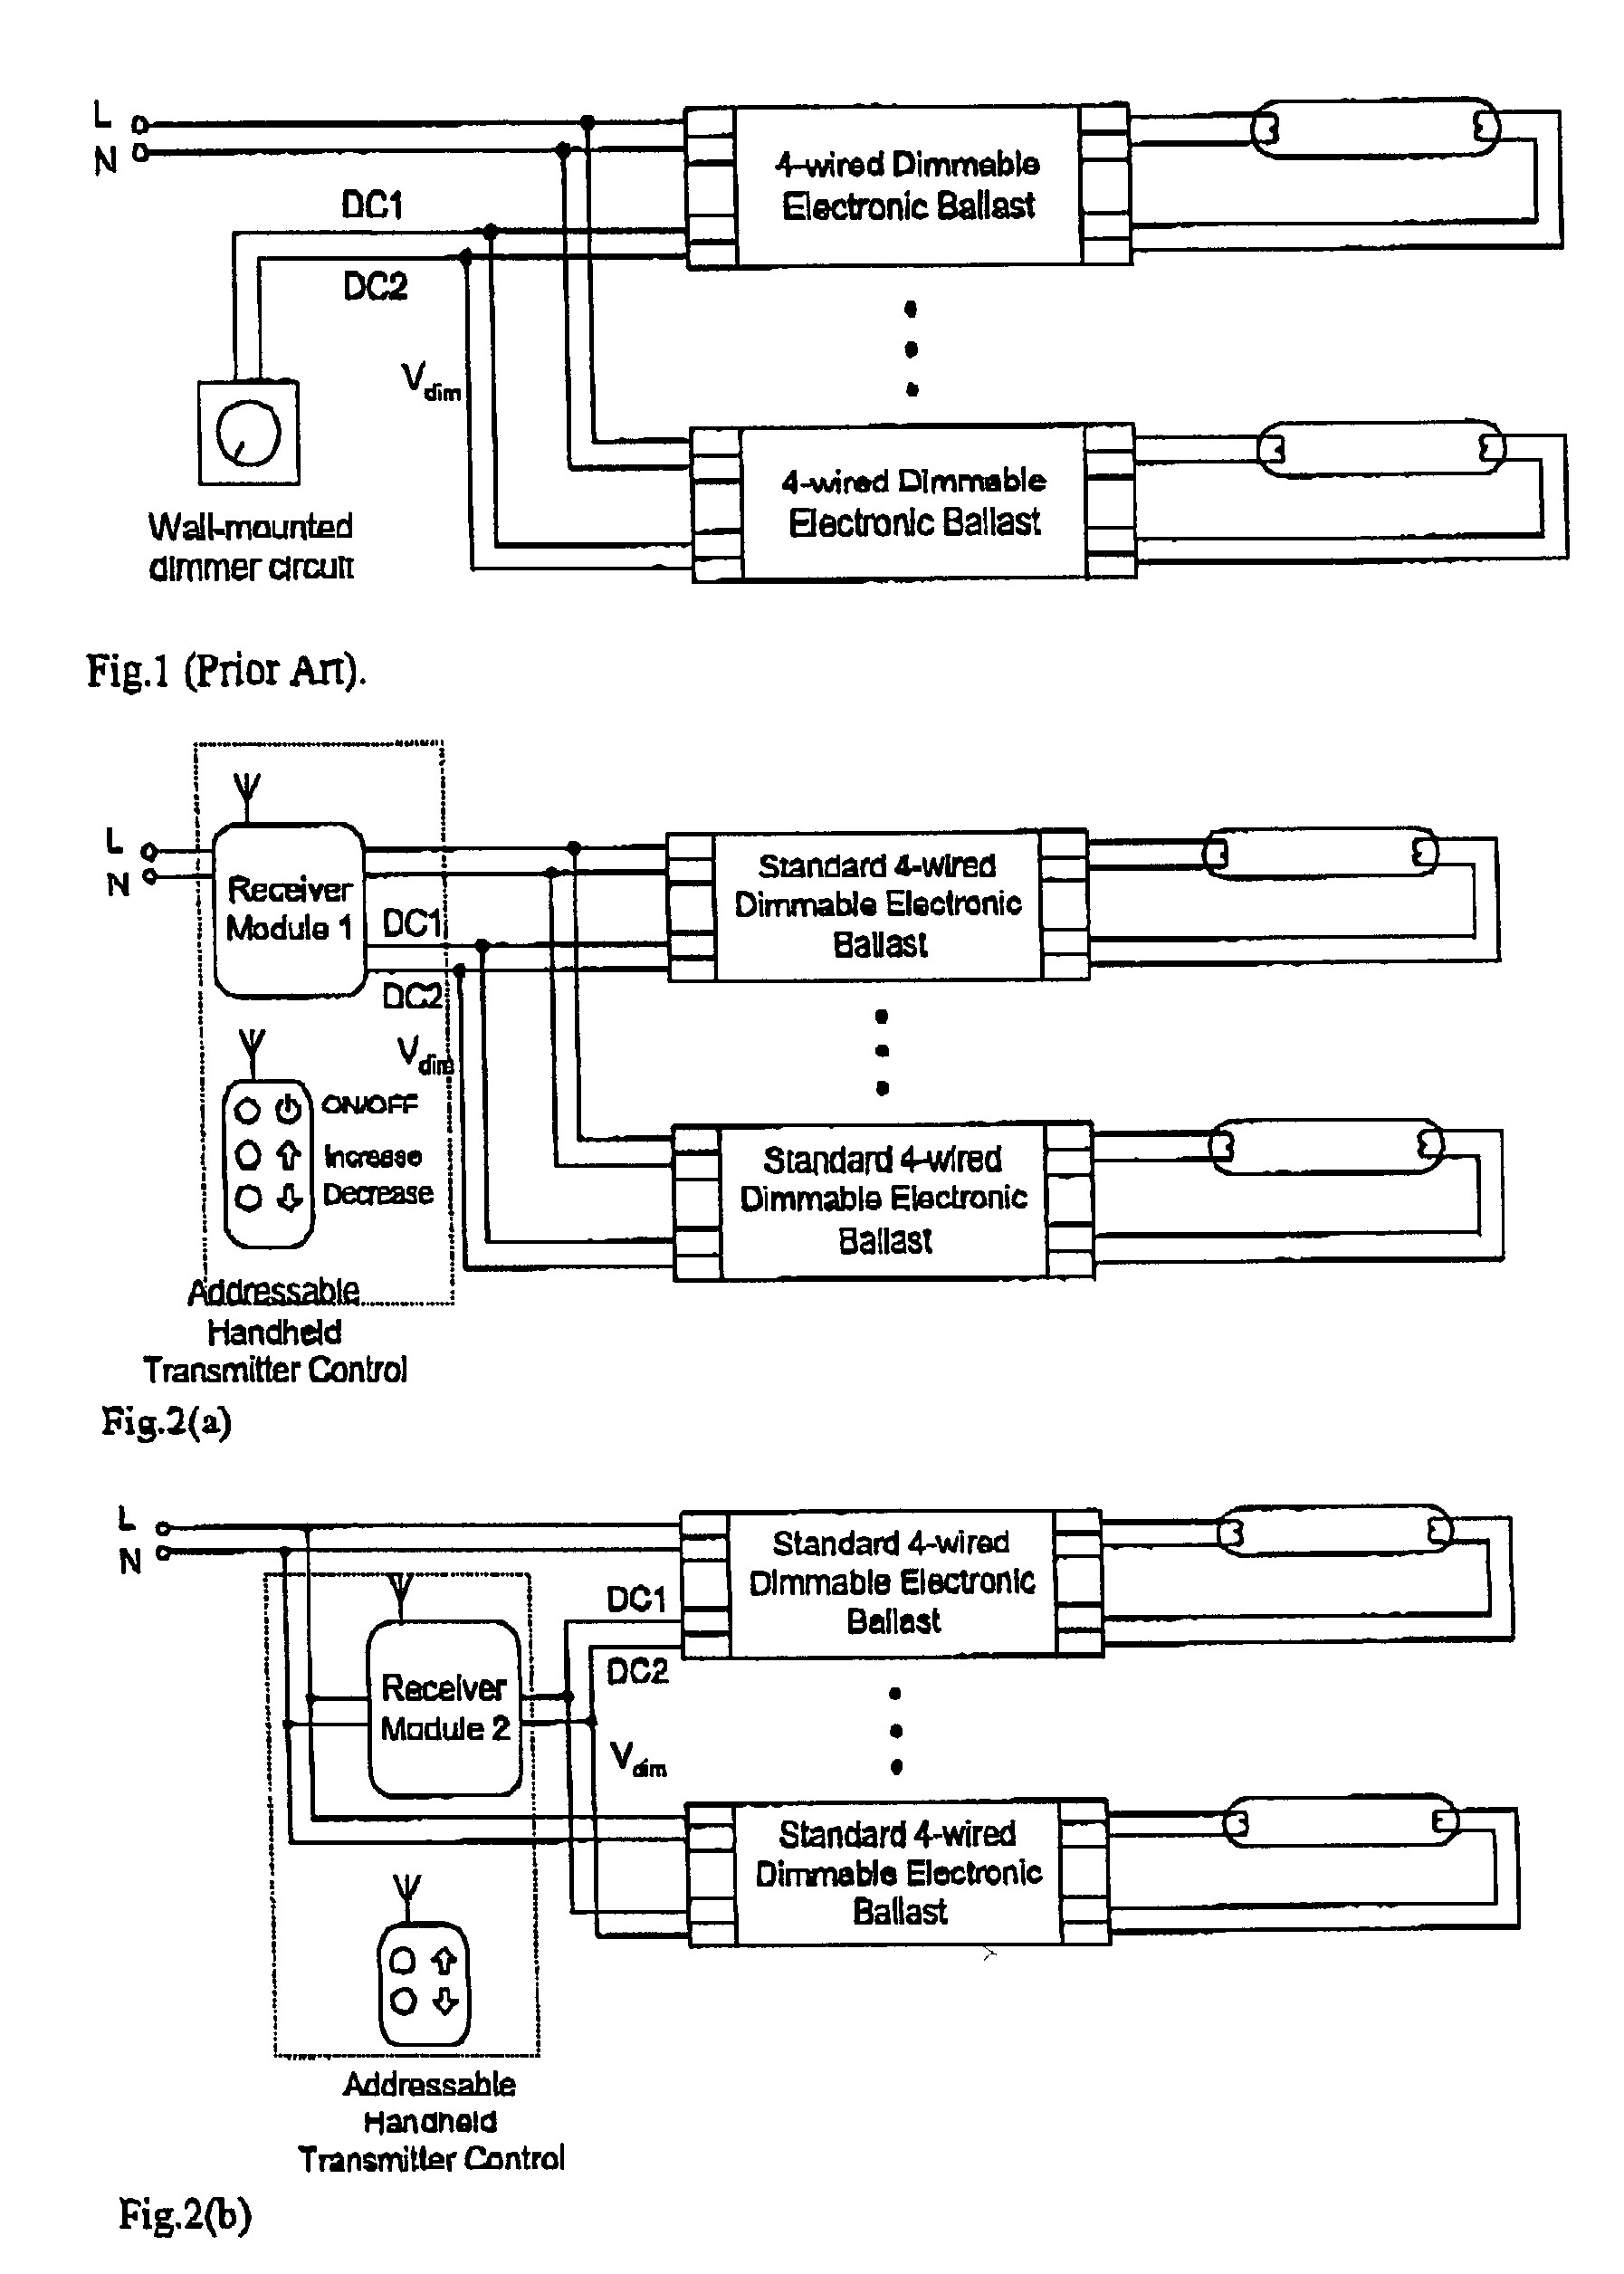 Stearns Brake Wiring Diagram Wiring Diagram for Lutron 3 Way Dimmer Switch the with Dimming Of Stearns Brake Wiring Diagram